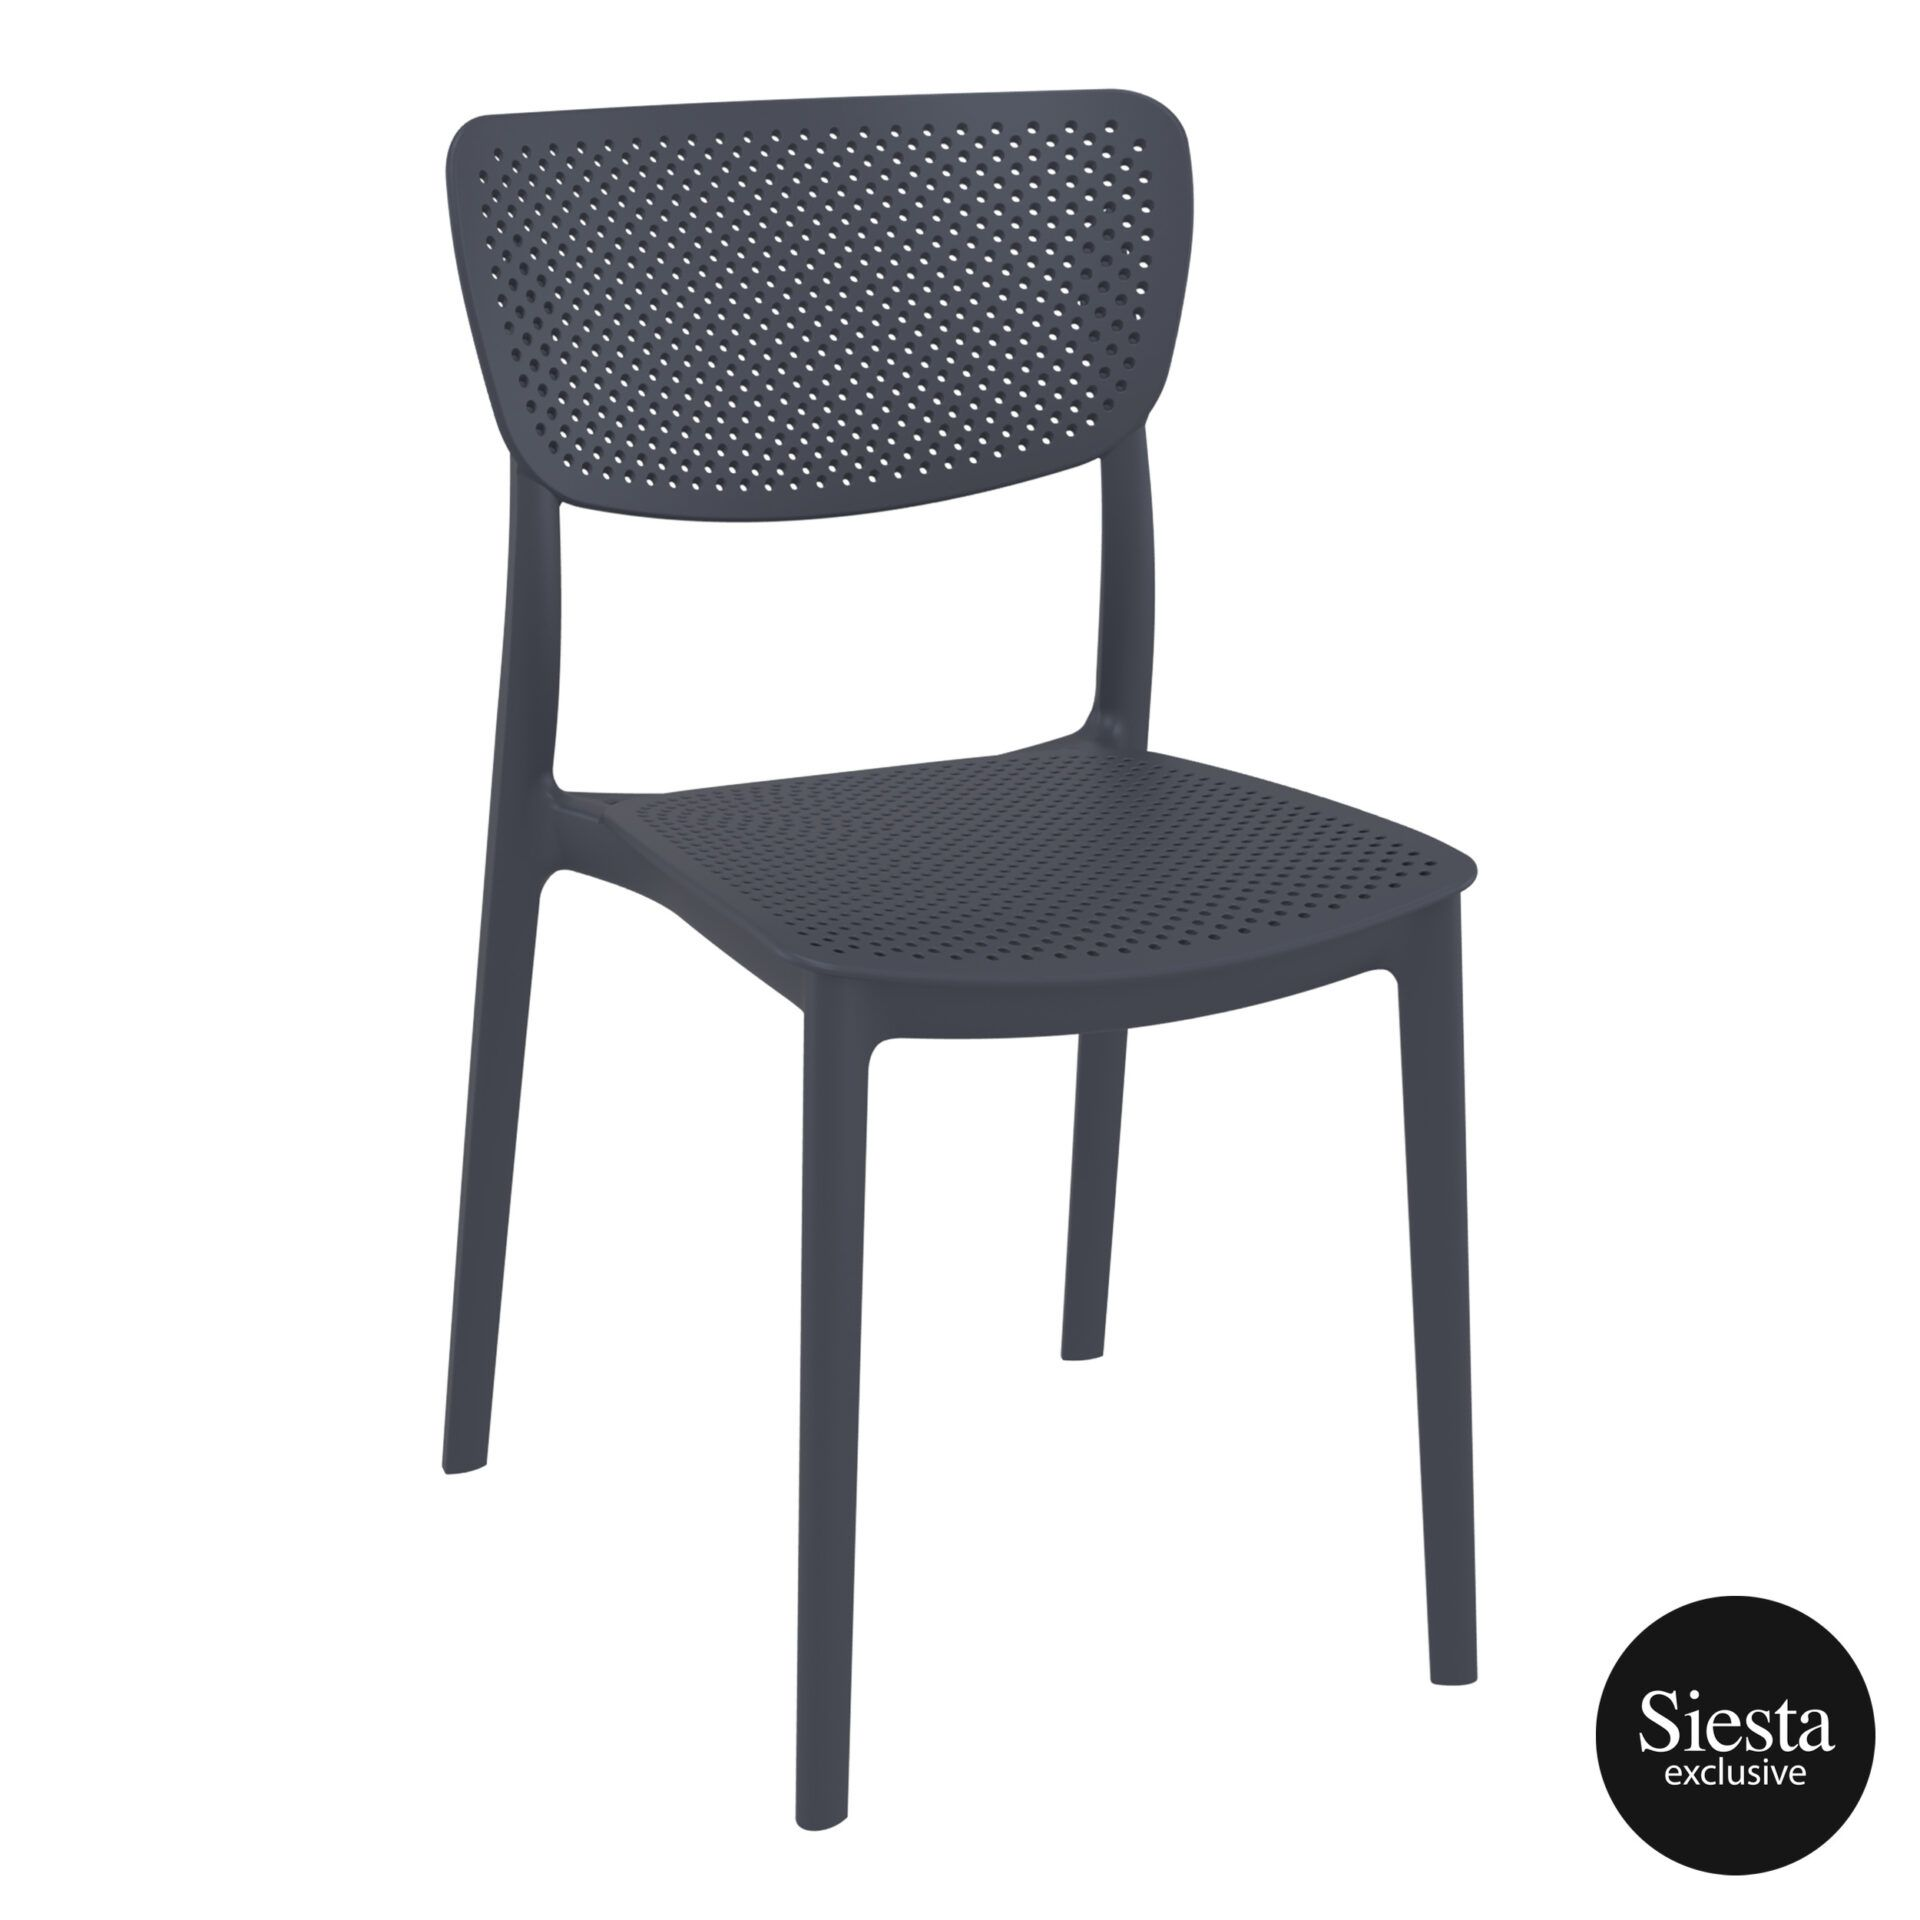 polypropylene hospitality seating lucy chair darkgrey front side 2